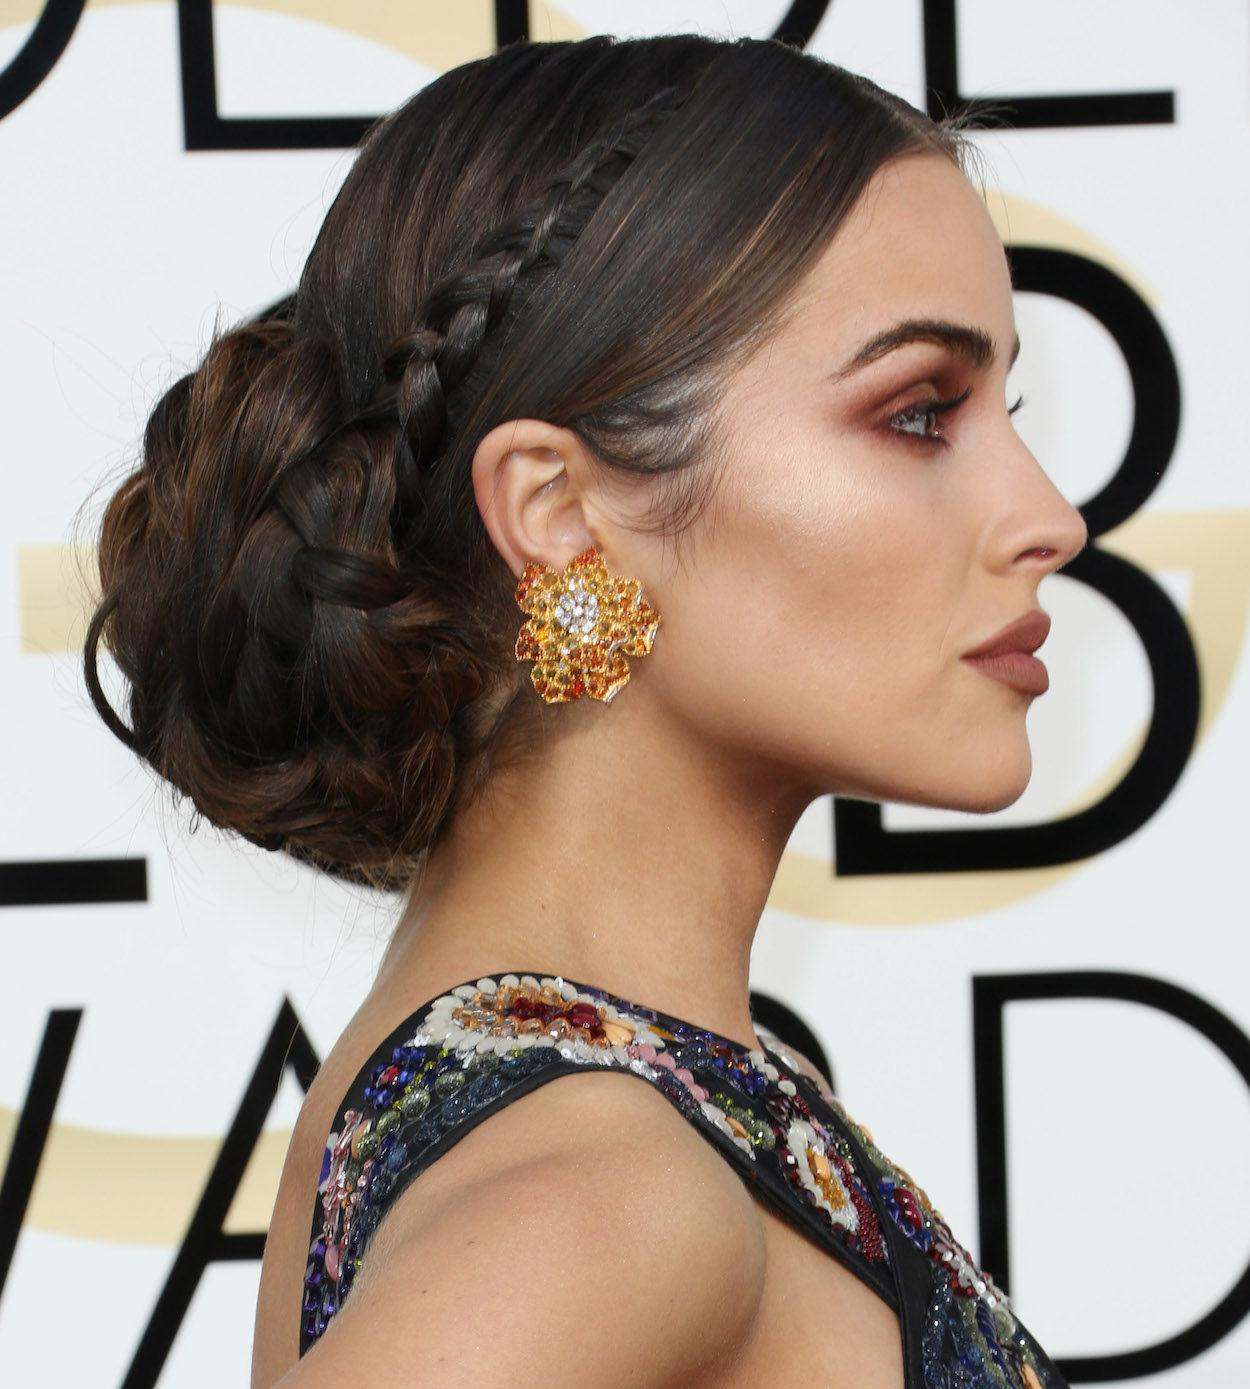 Inspirasi model rambut leia organa Bun dengan mini crown braid pada film Star Wars VIII: The Last Jedi